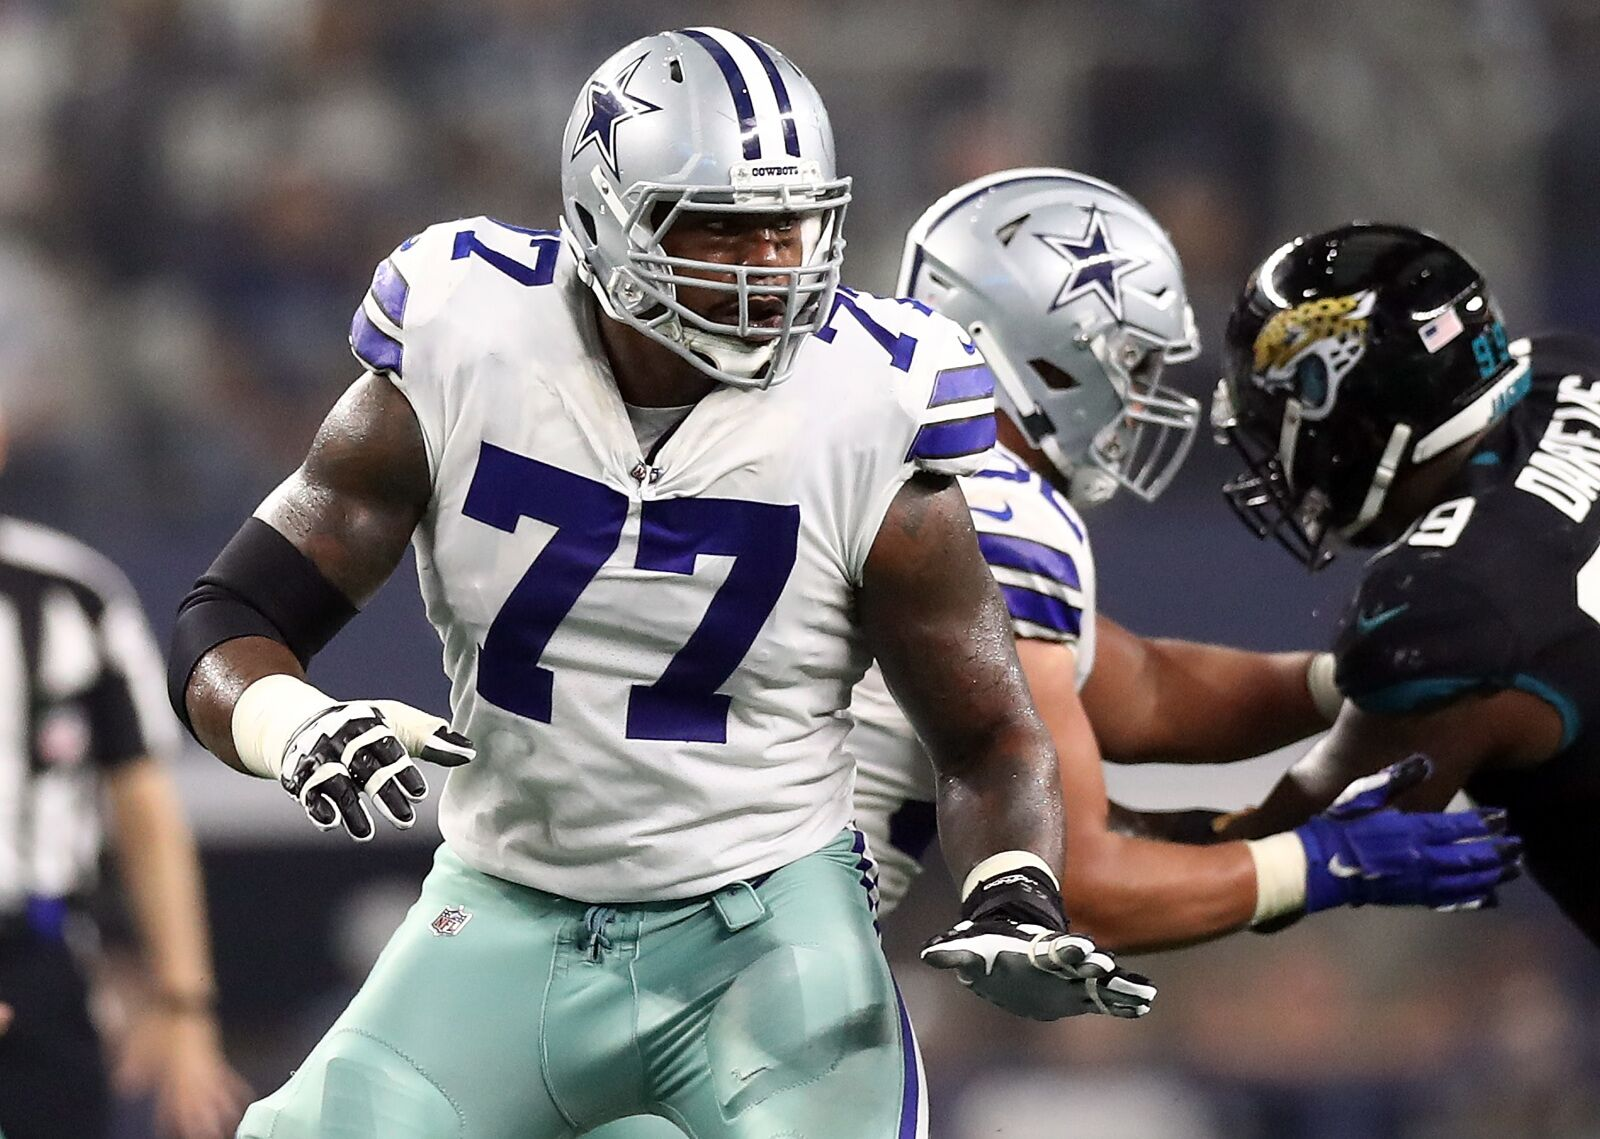 Dallas Cowboys: Tyron Smith at his best in the clutch